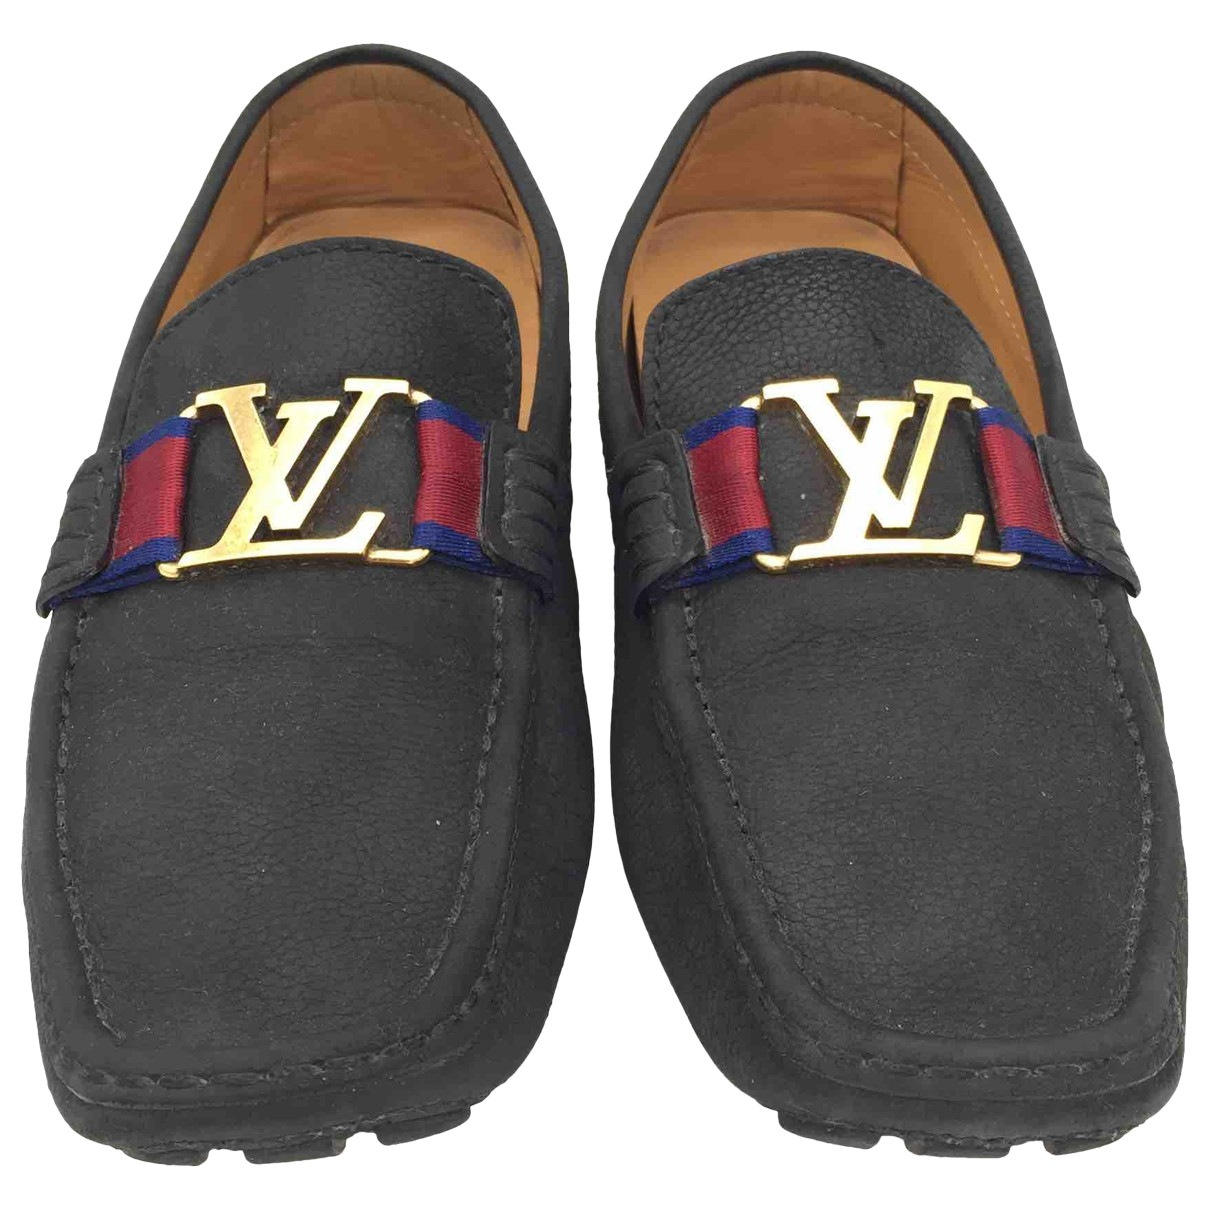 Mocasines Montaigne Louis Vuitton